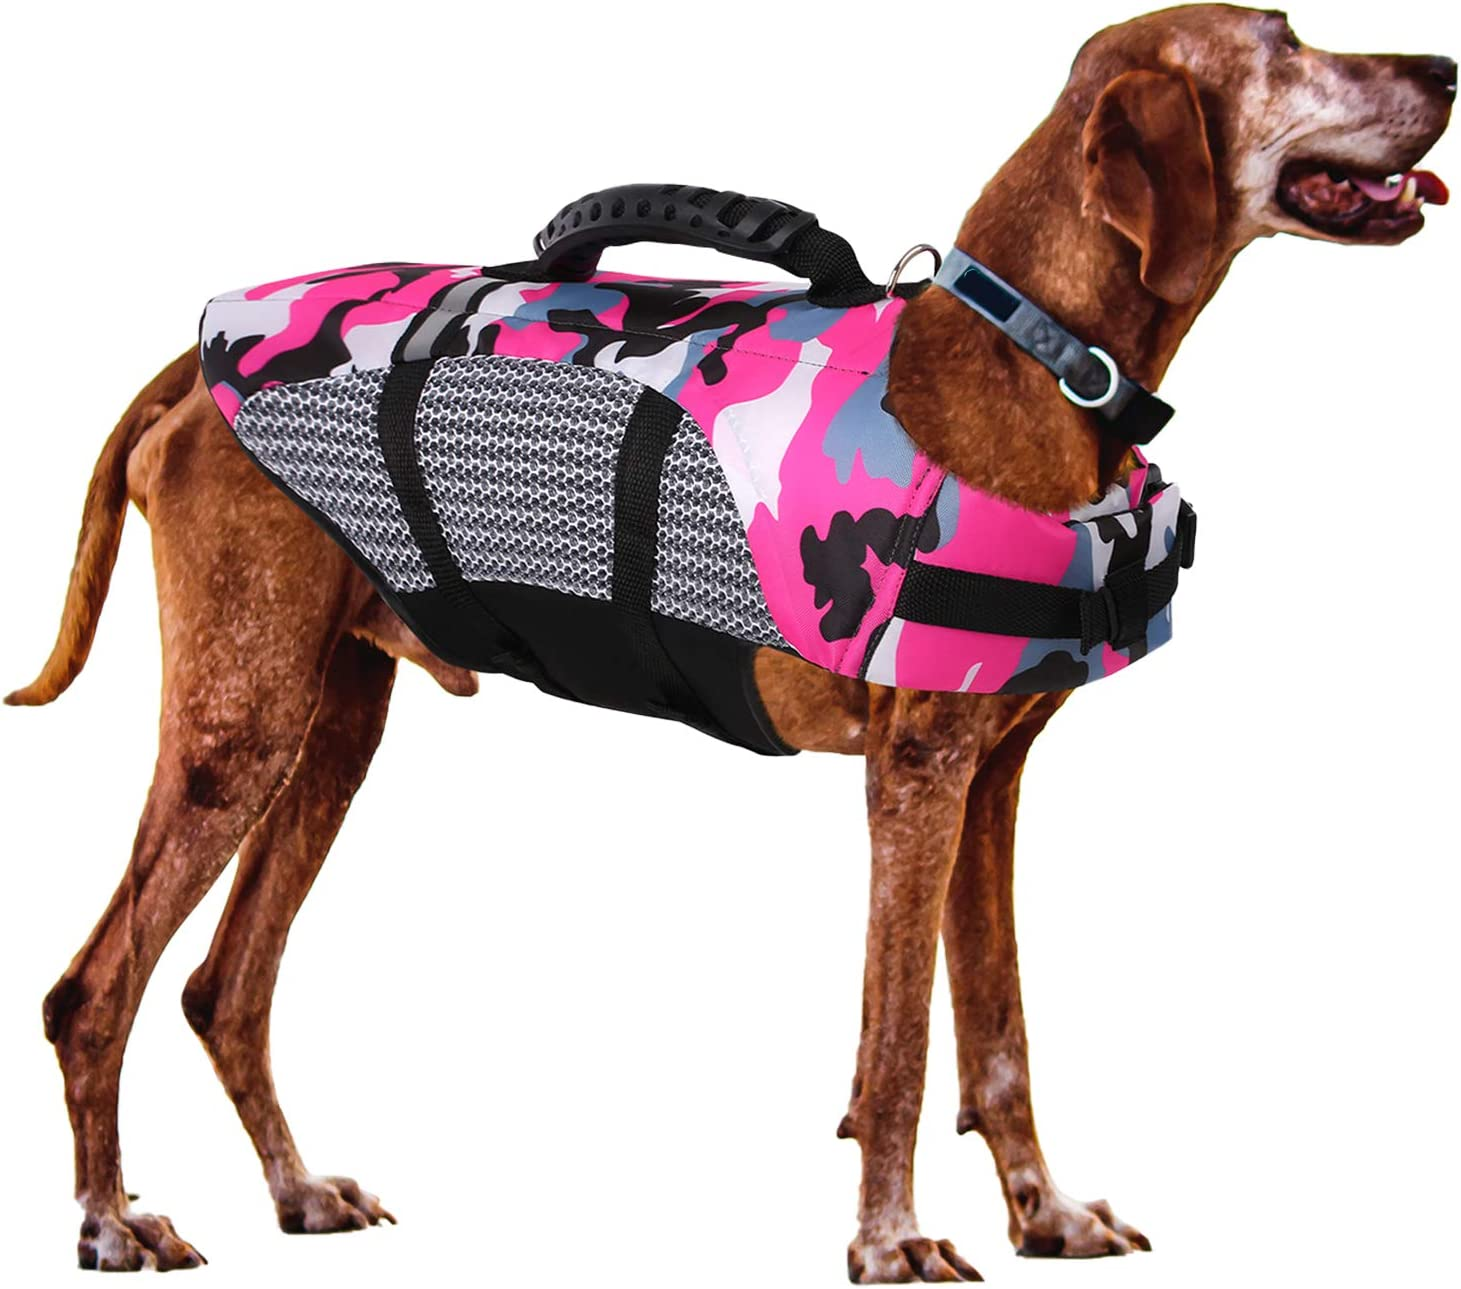 Super sale period limited SAWMONG Dog Large special price Life Jacket for Small Dogs Adjustable Medium